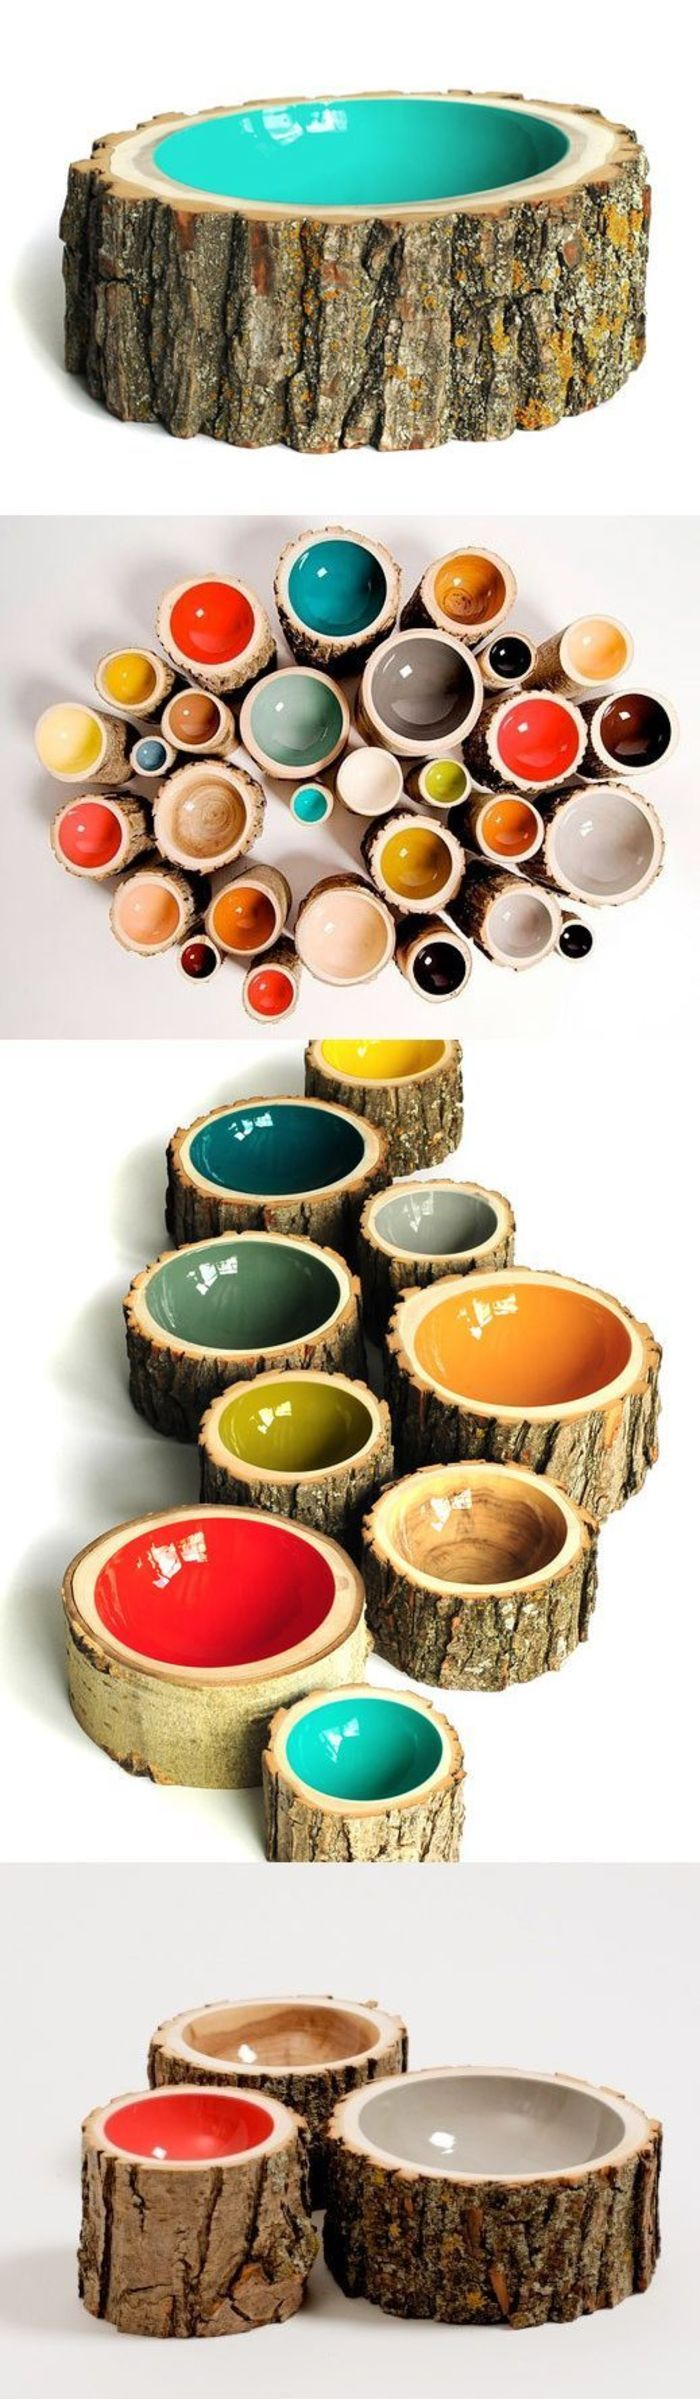 Glorious autumn colours. DIY tree trunk bowls. So clever!